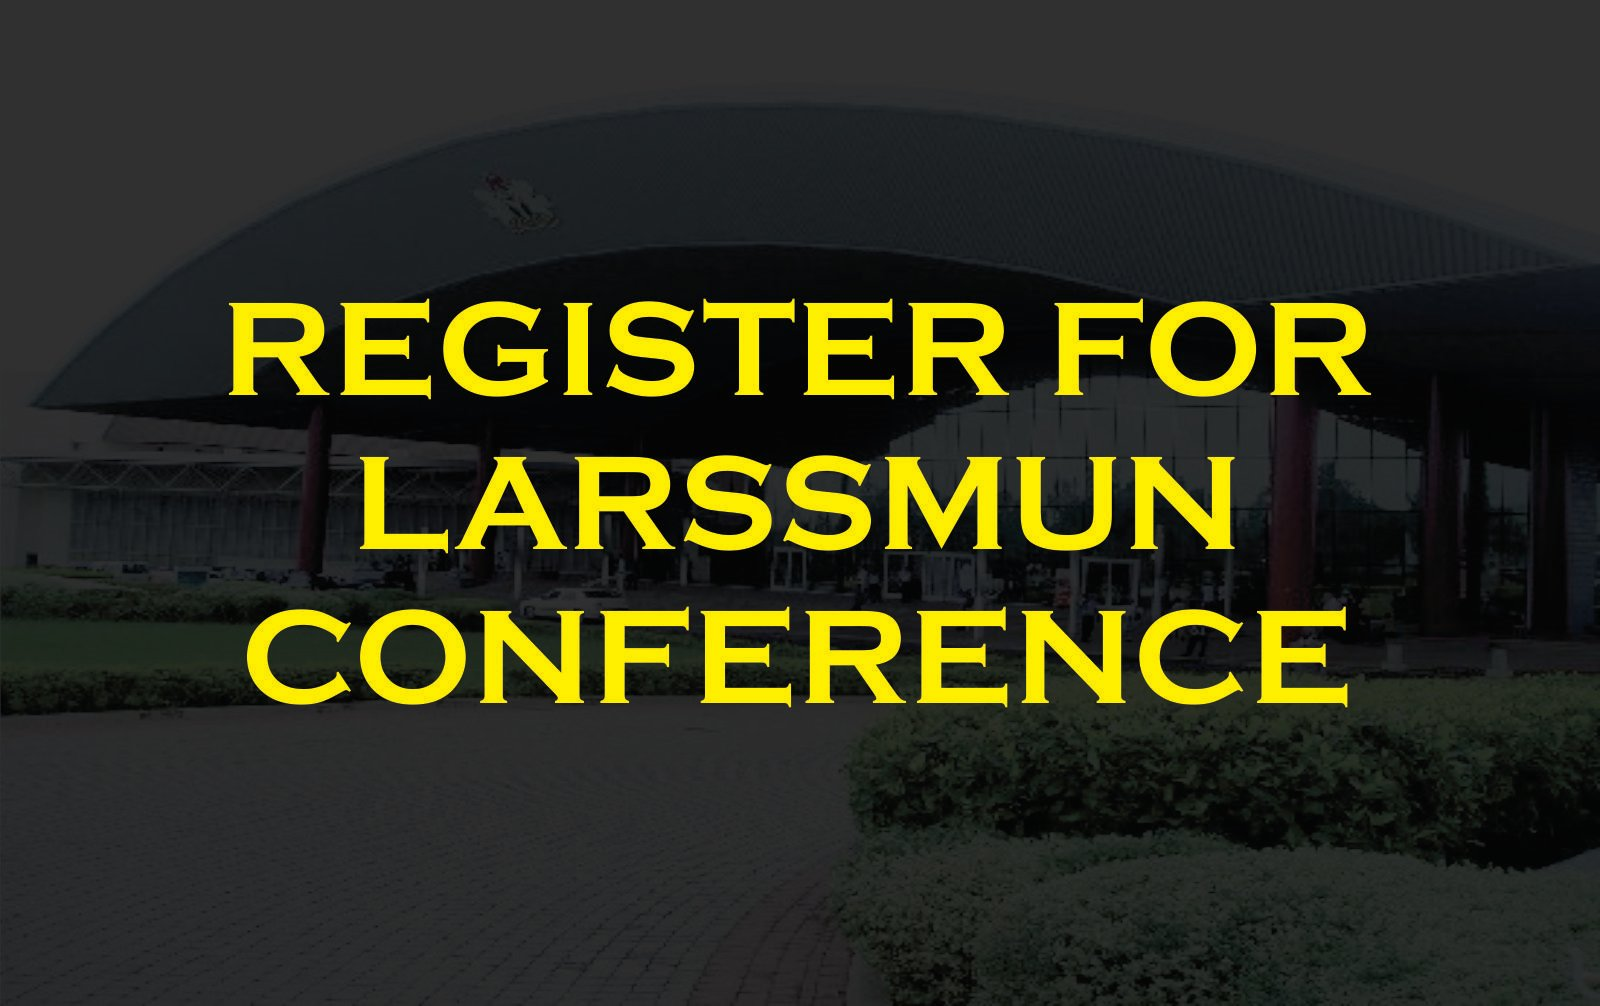 REGISTER FOR LARSSMUN CONFERENCE